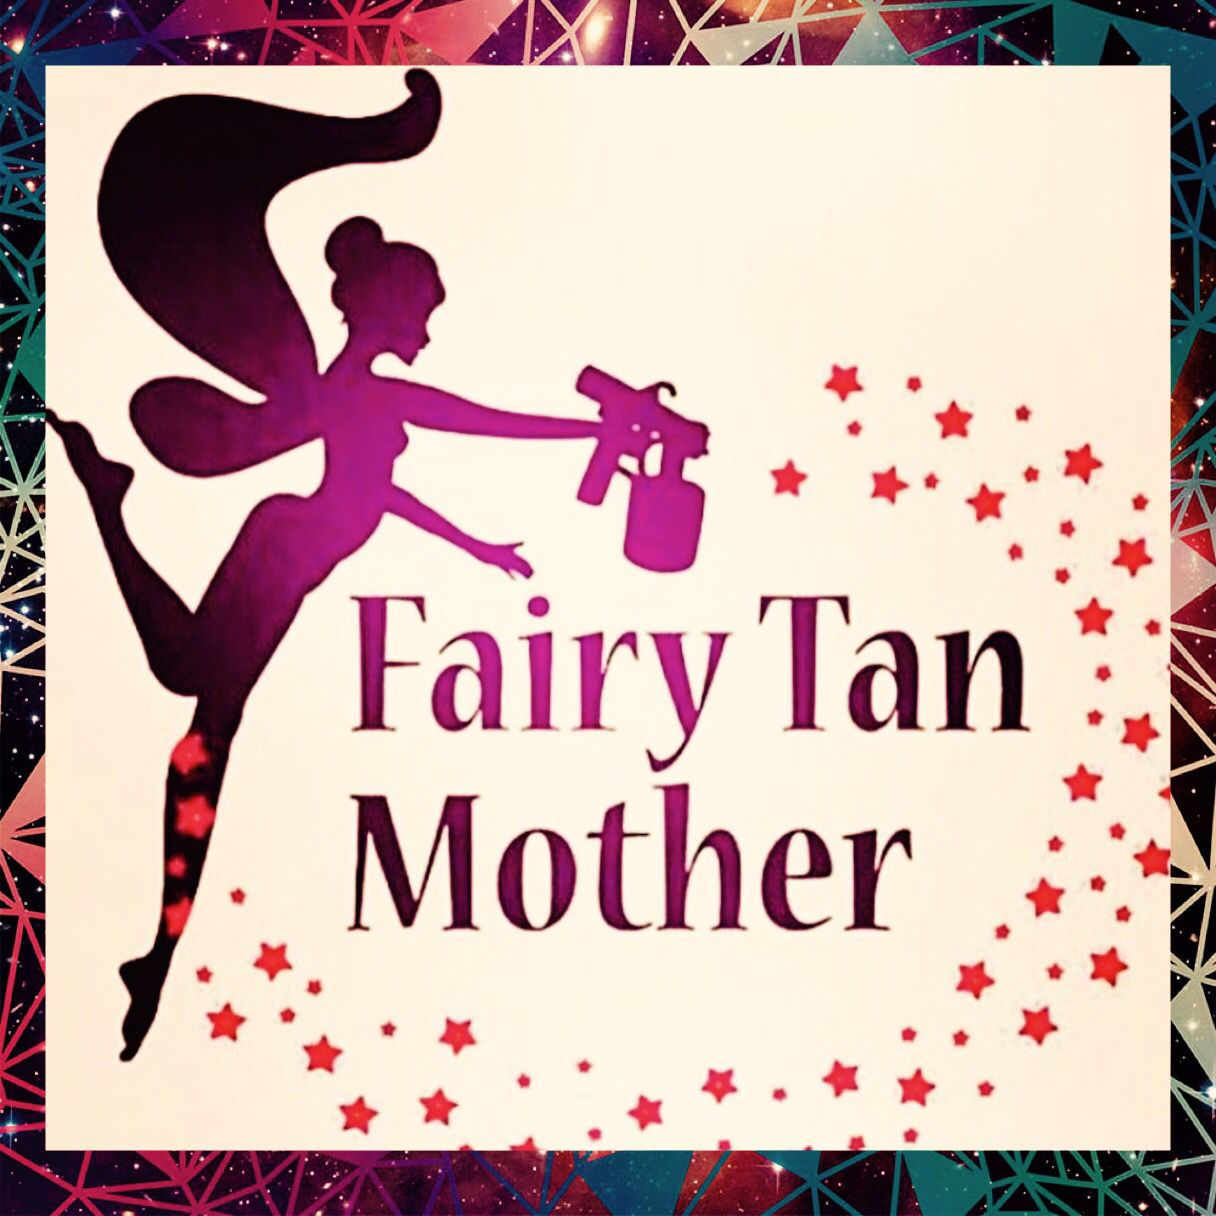 Contact Me For This Month Specials On Free Tans Bronzage